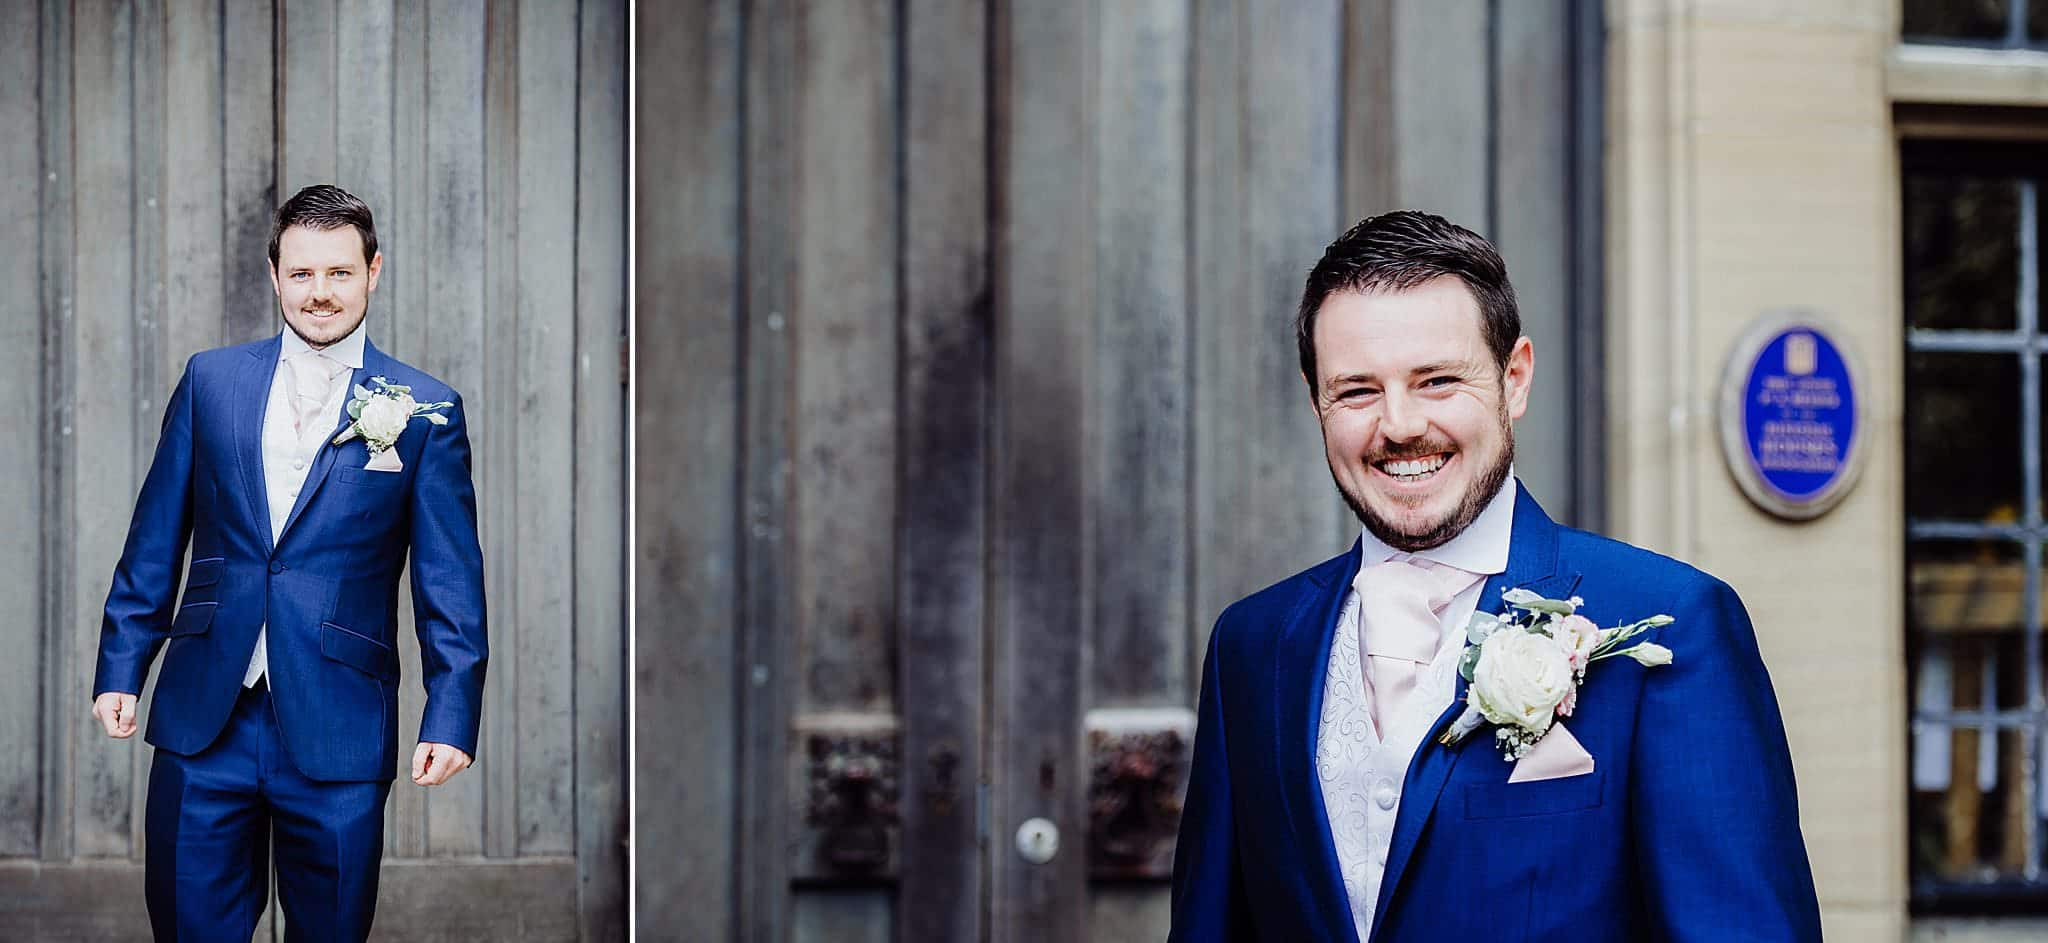 Portraits of the groom stood in front of grey wood gates at Gregnog Hall wedding venue